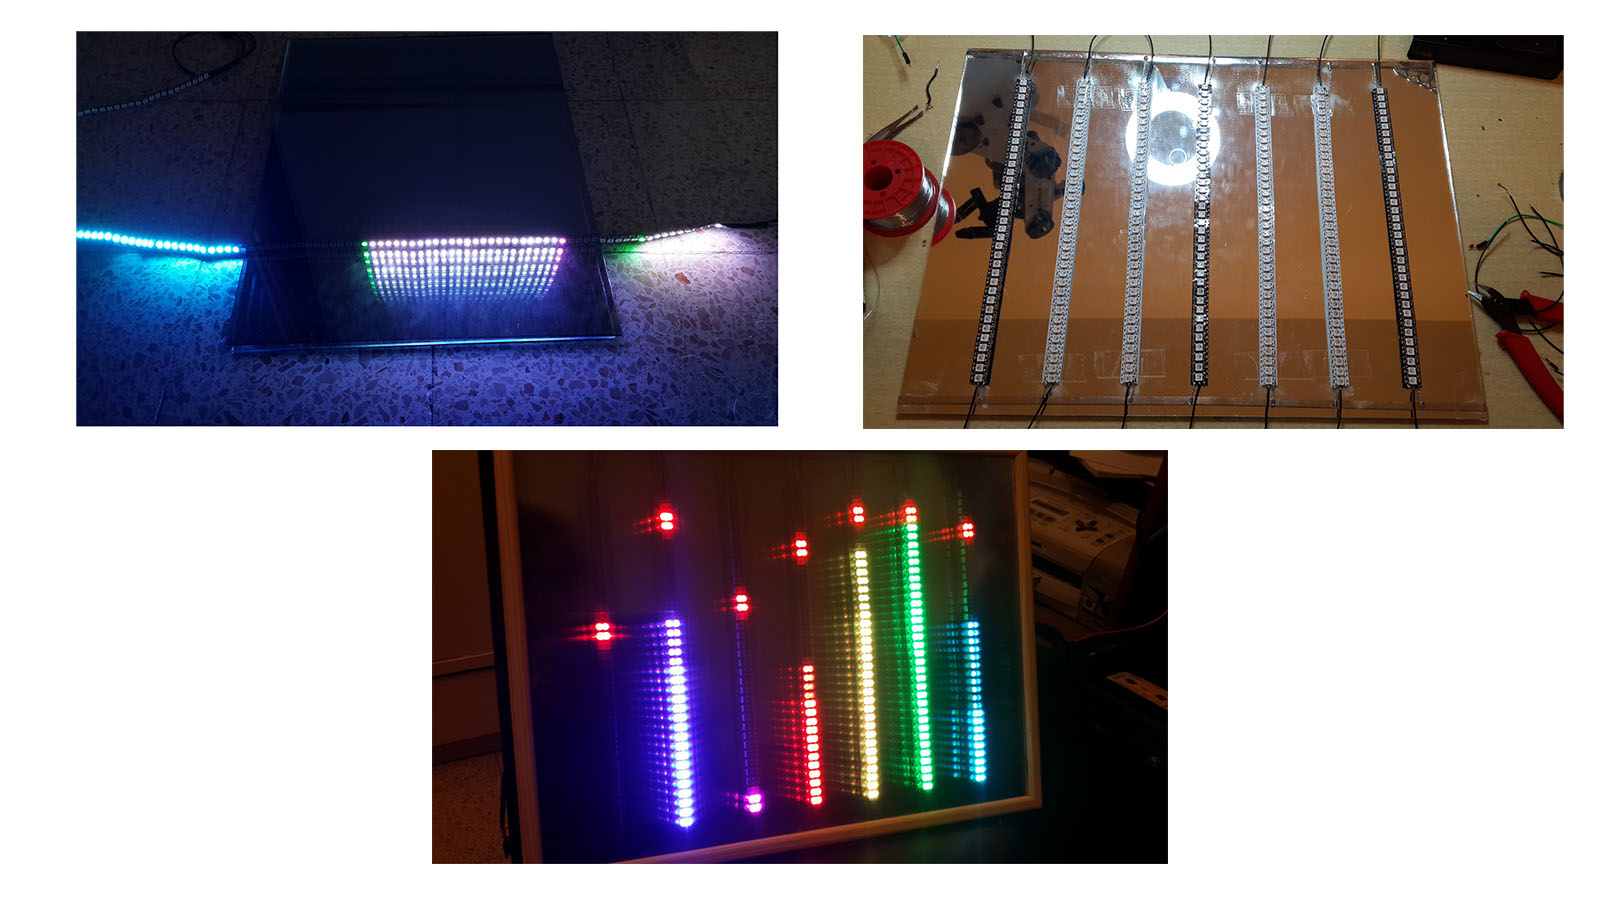 spectrum analyzer 3D display building process